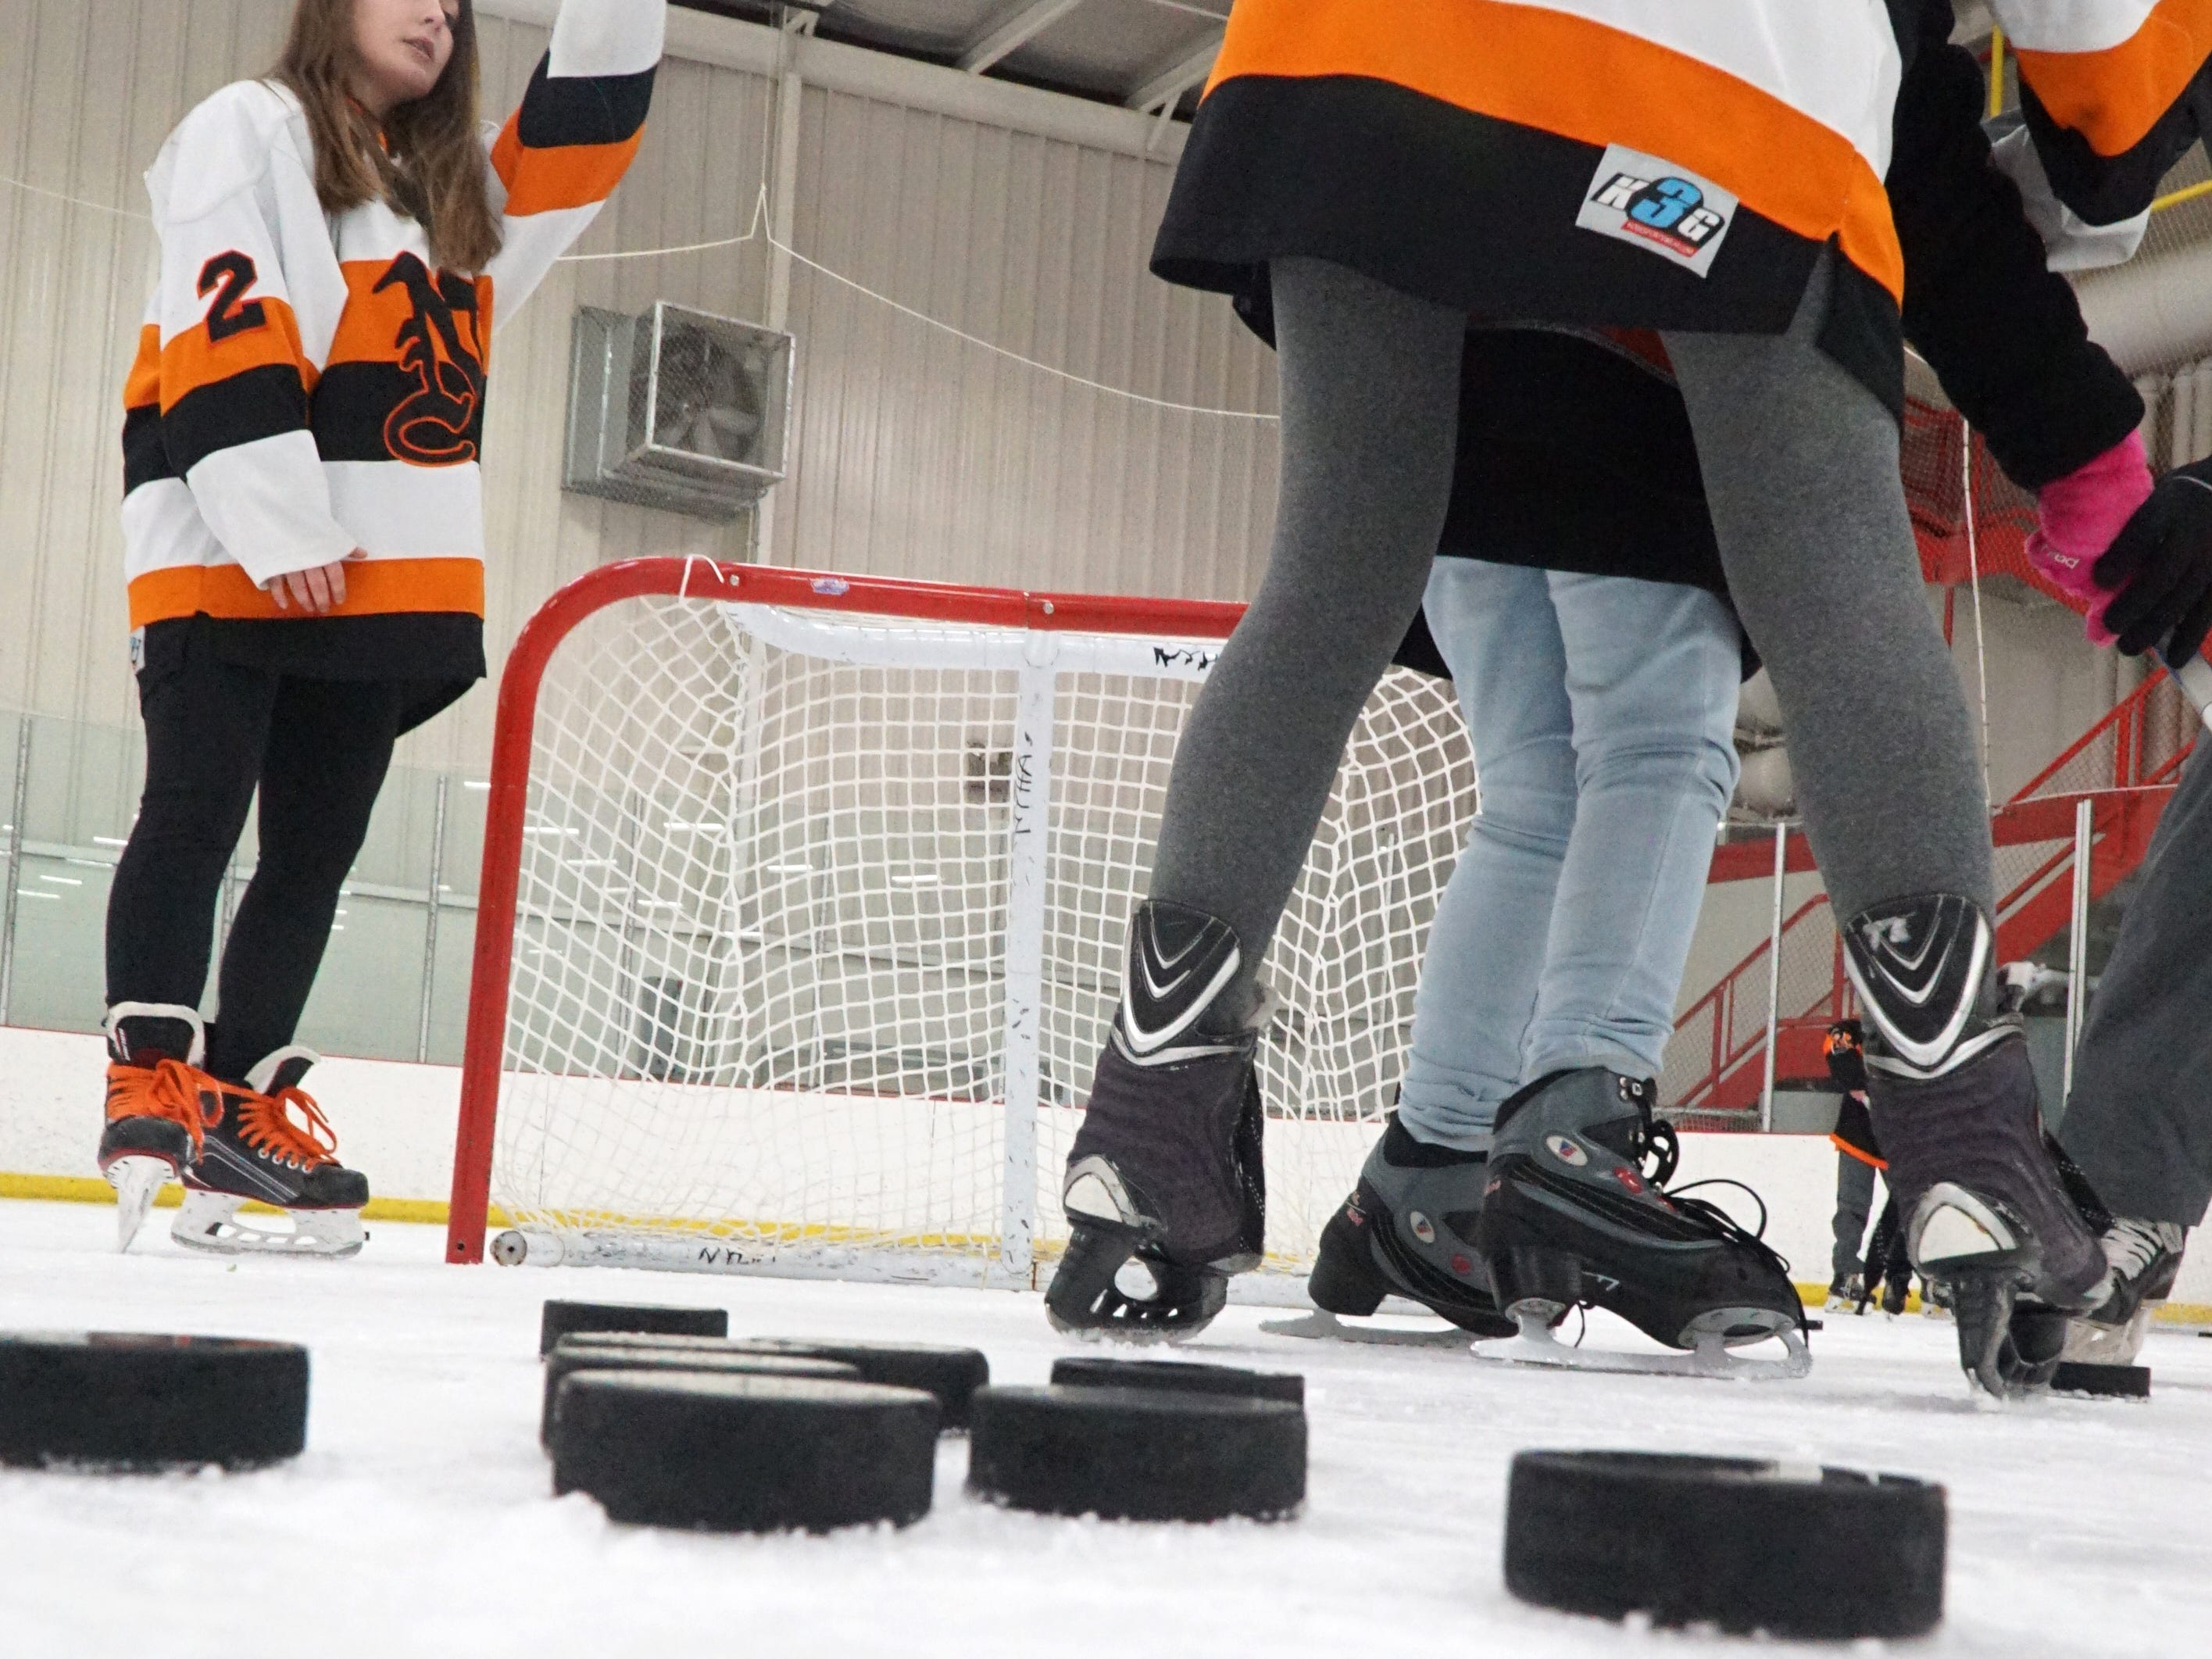 There were lots of hockey sticks and pucks on the ice on Wednesday at the ice arena.